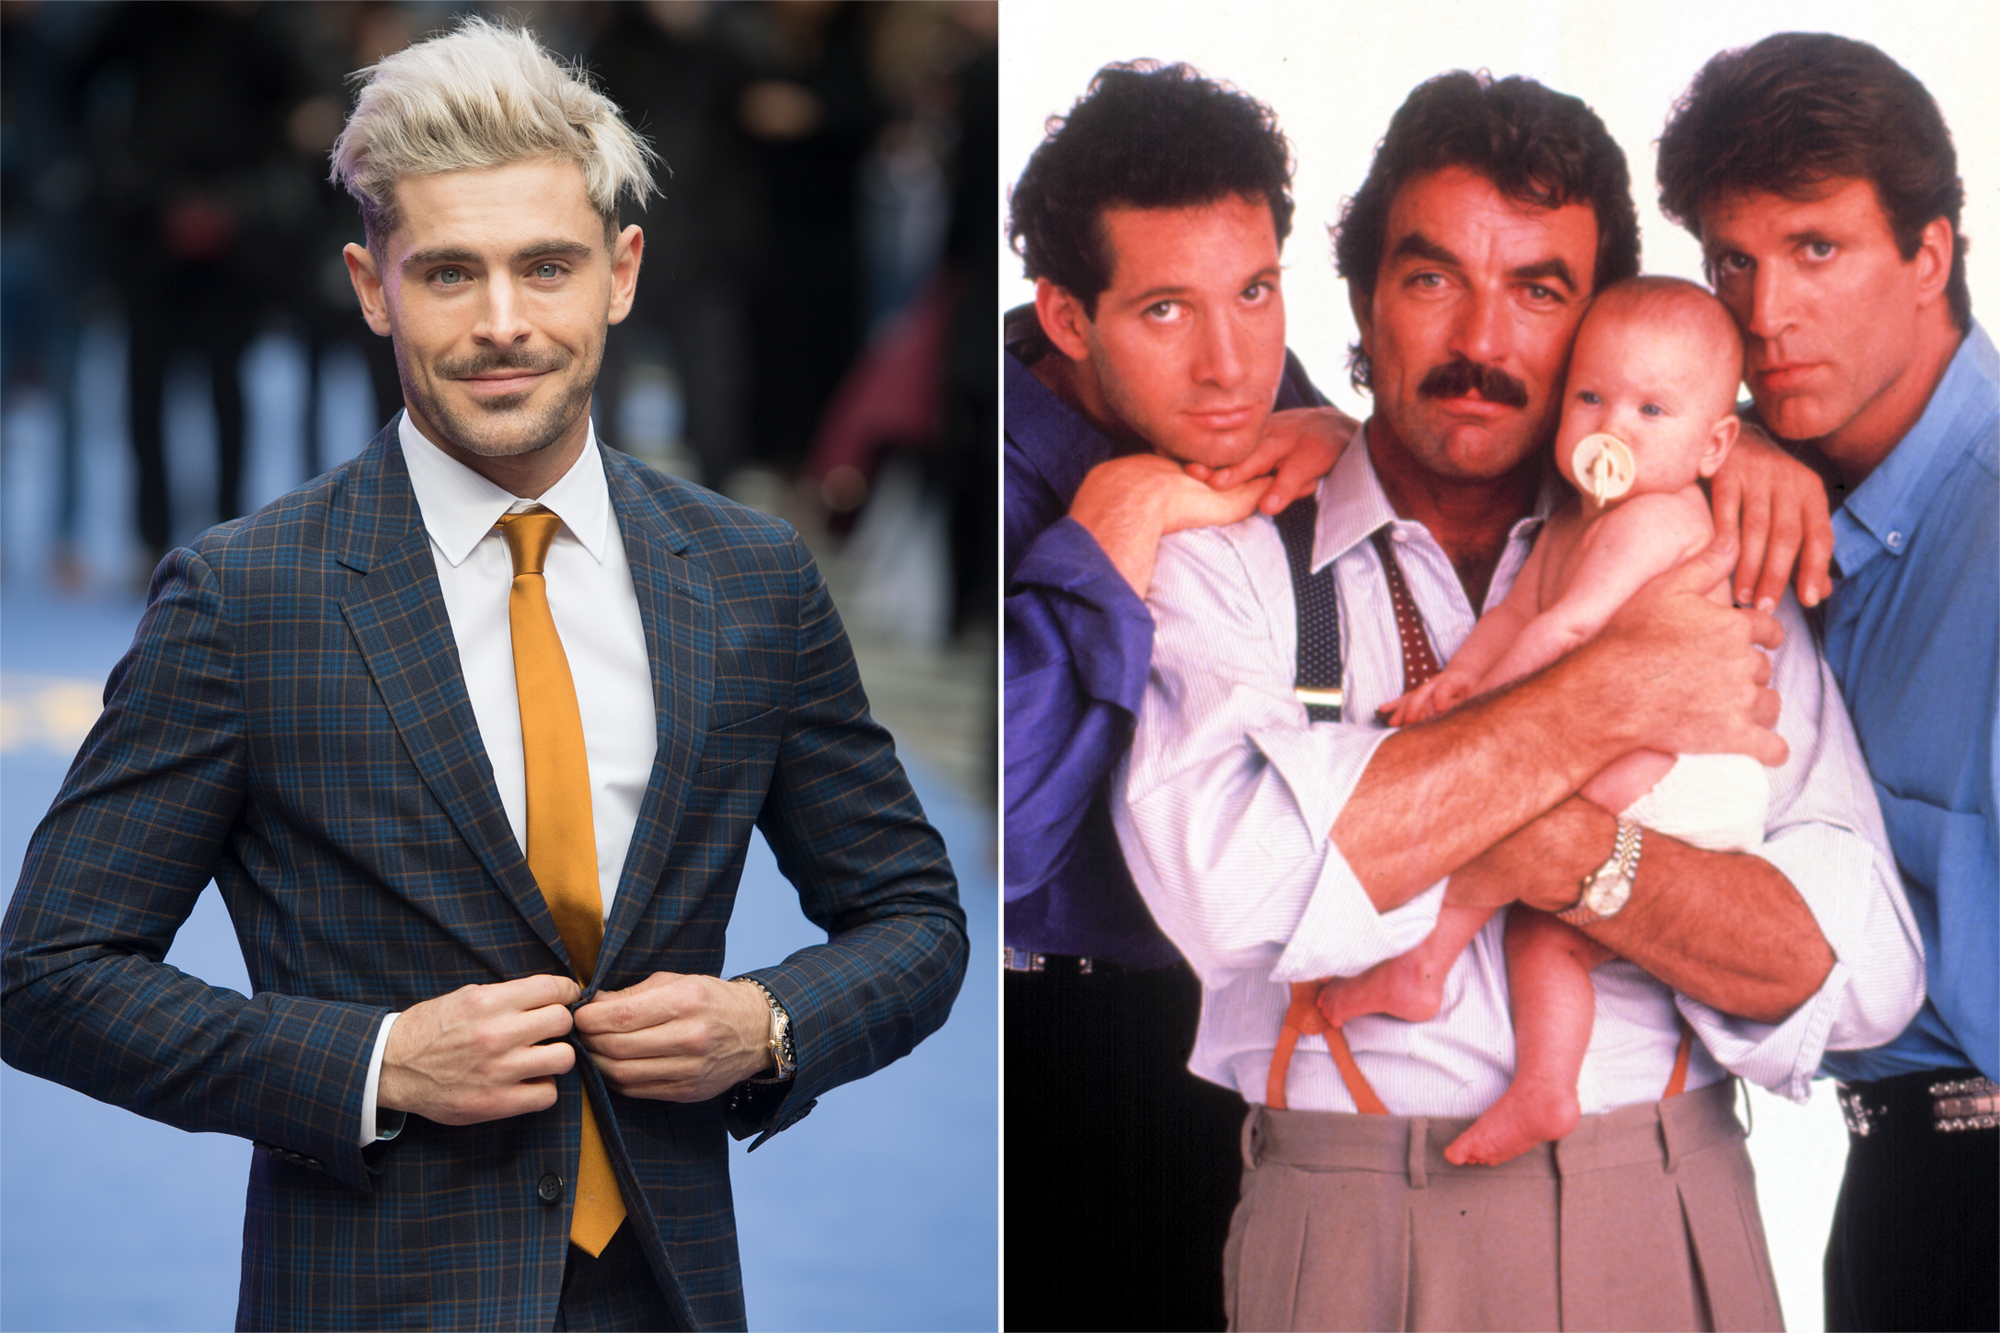 Zac Efron, THREE MEN AND A BABY